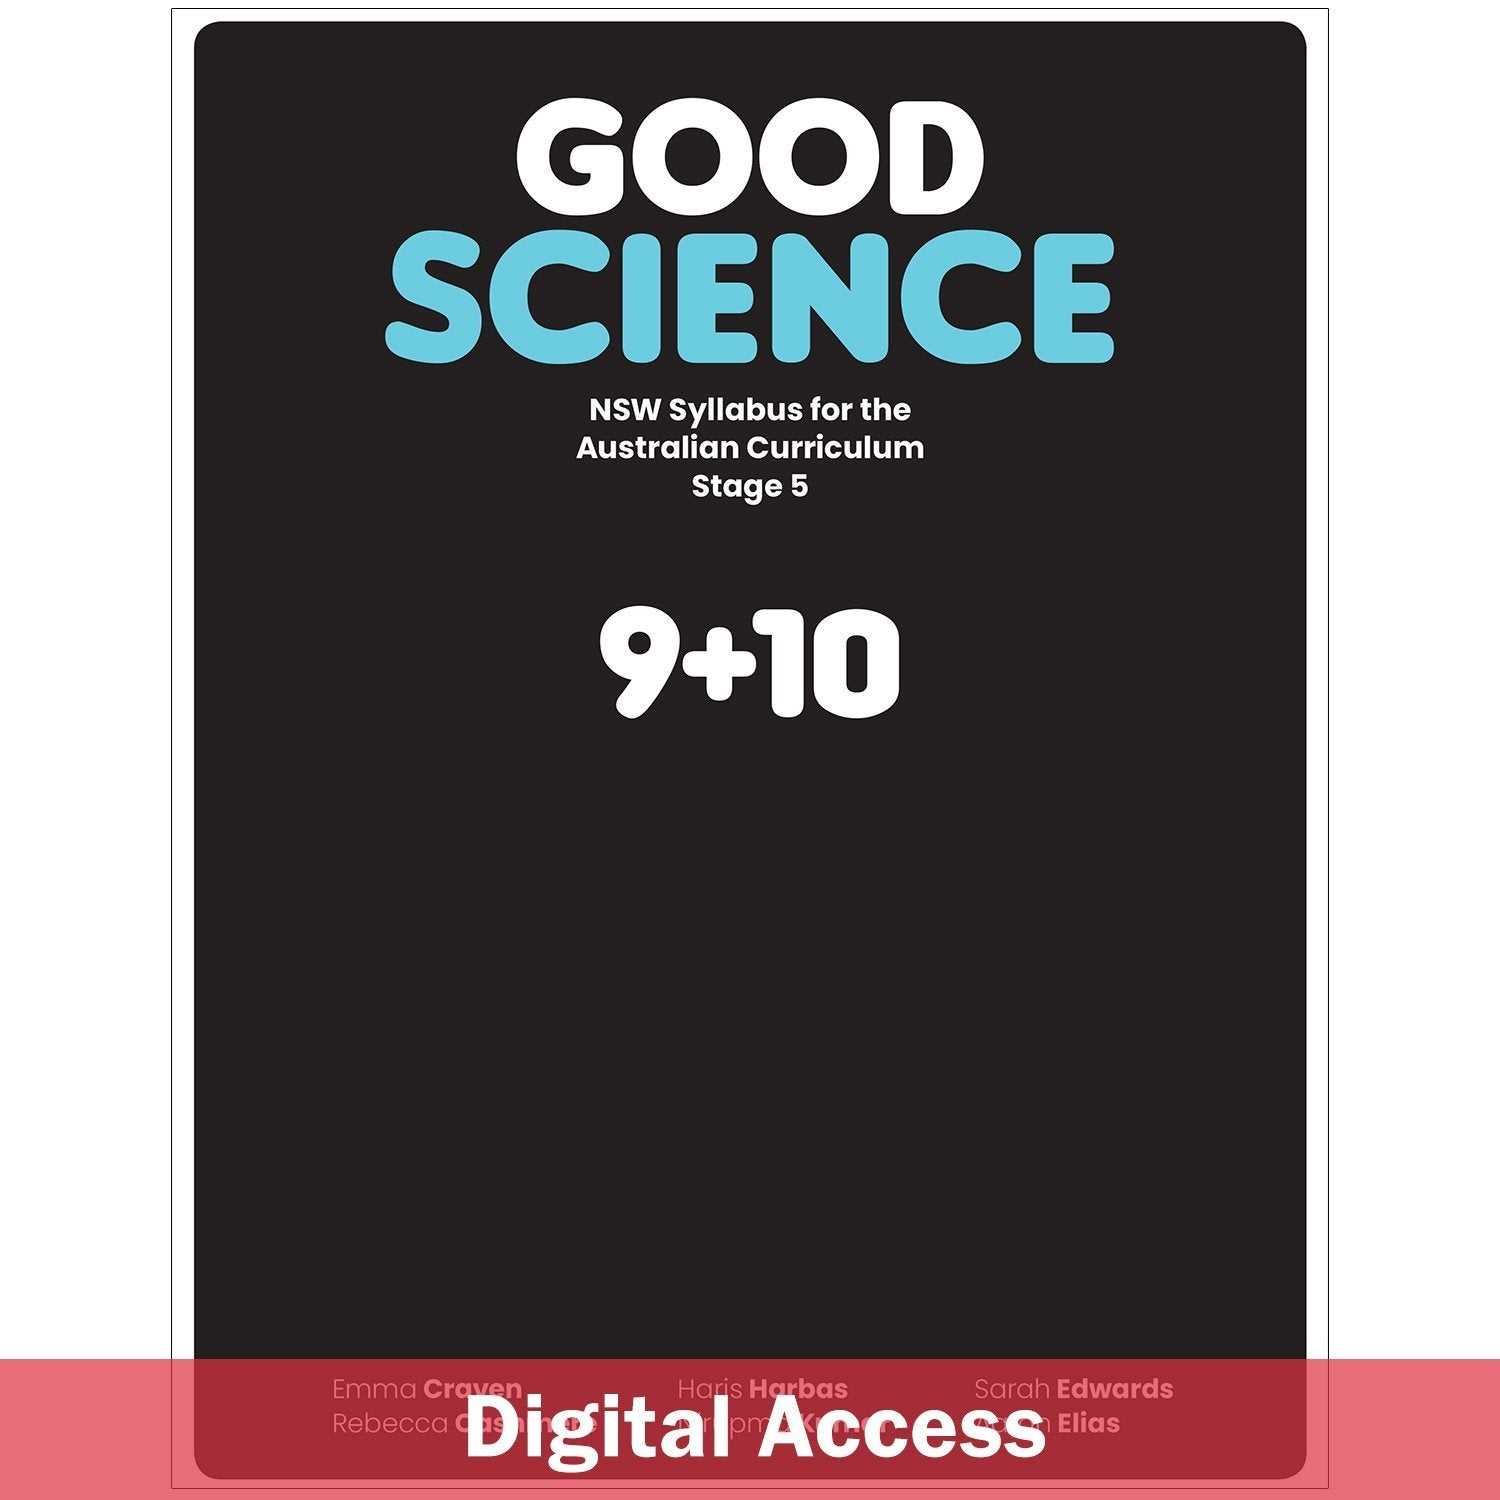 Good Science NSW Syllabus Stage 5 Student Book 2-Year Reactivation Code